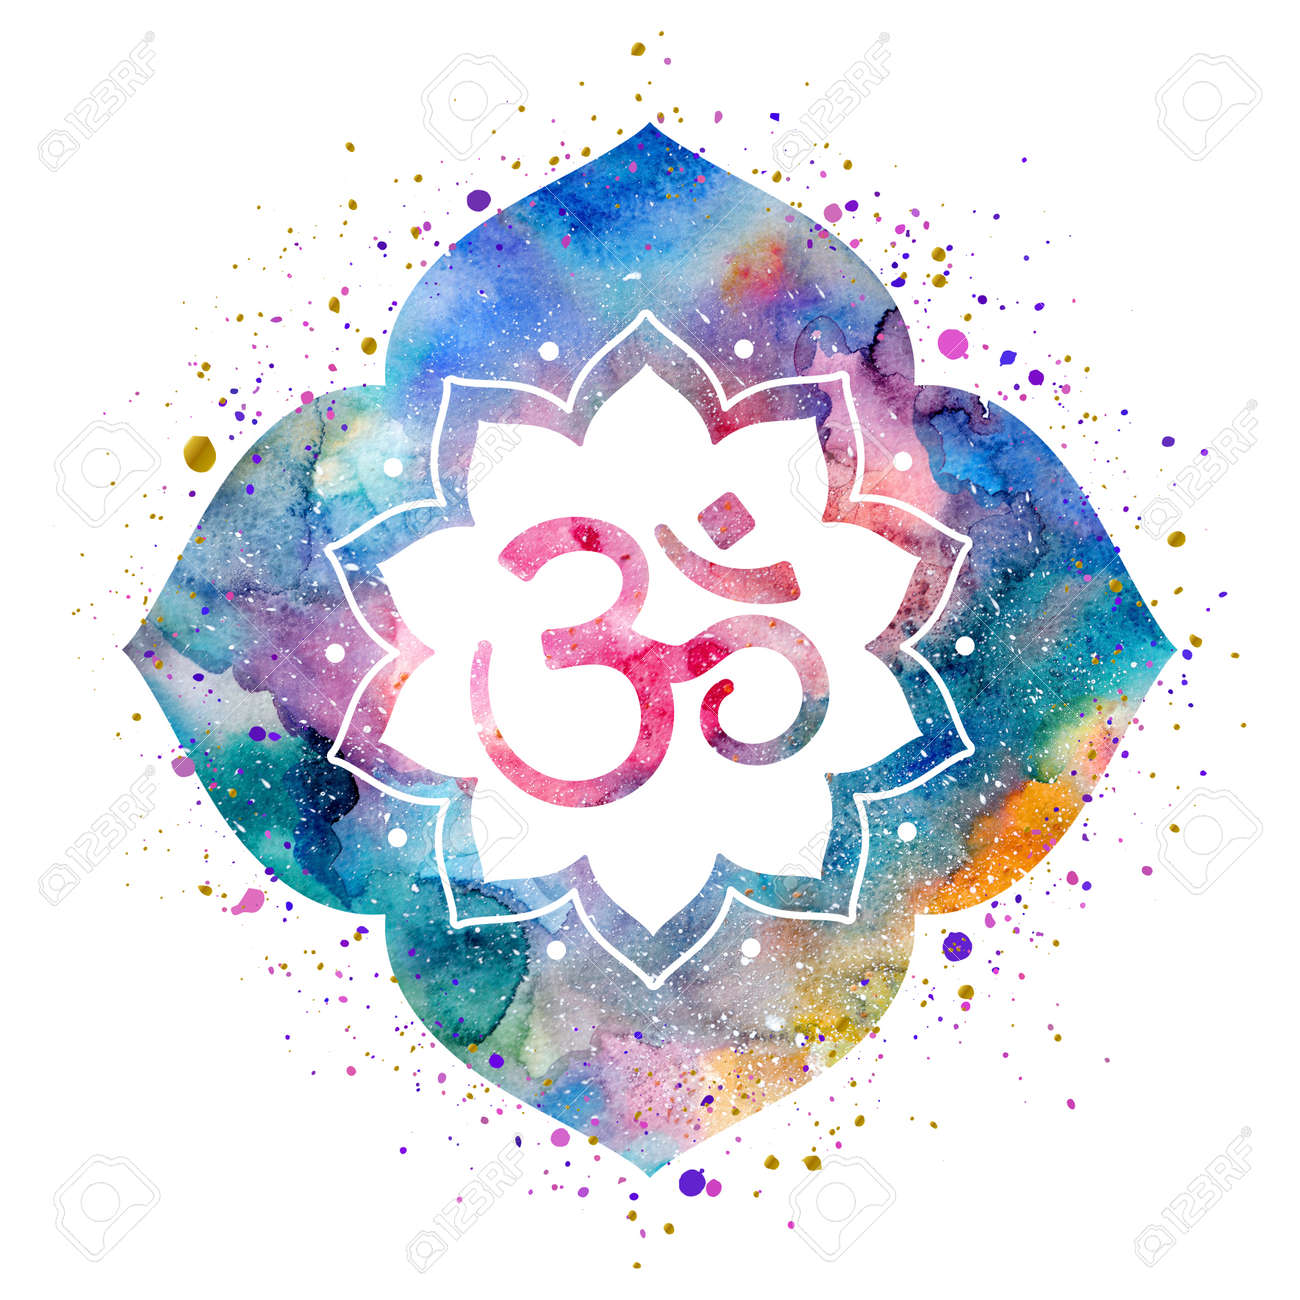 Om Sign In Lotus Flower Rainbow Watercolor Texture And Splash